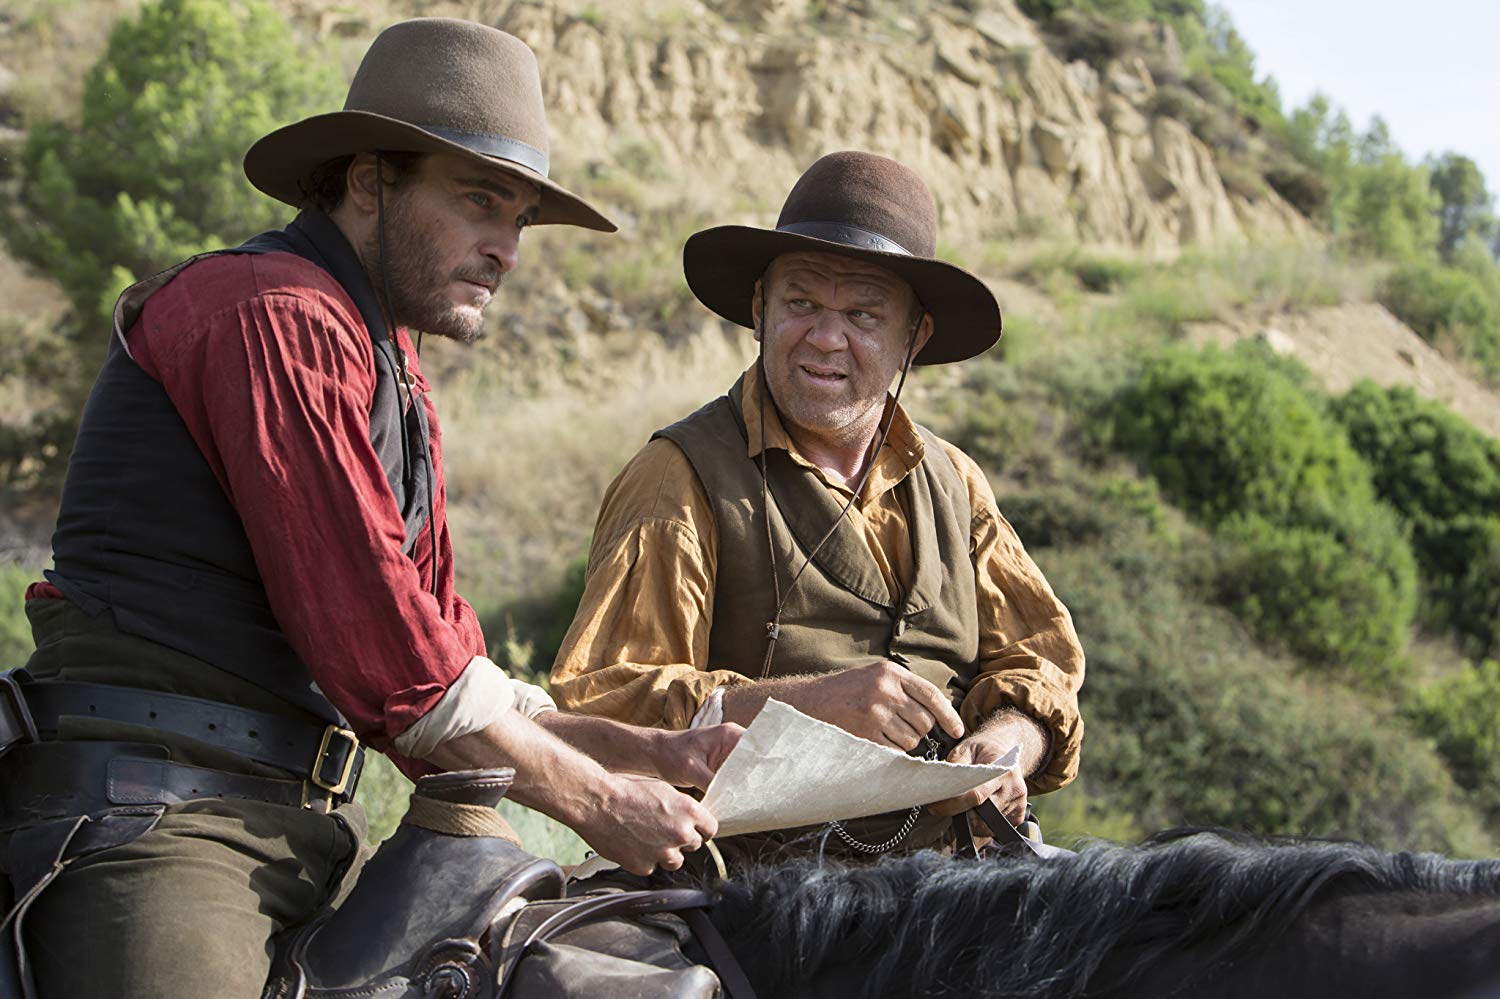 Sisters Biraderler – (The Sisters Brothers)